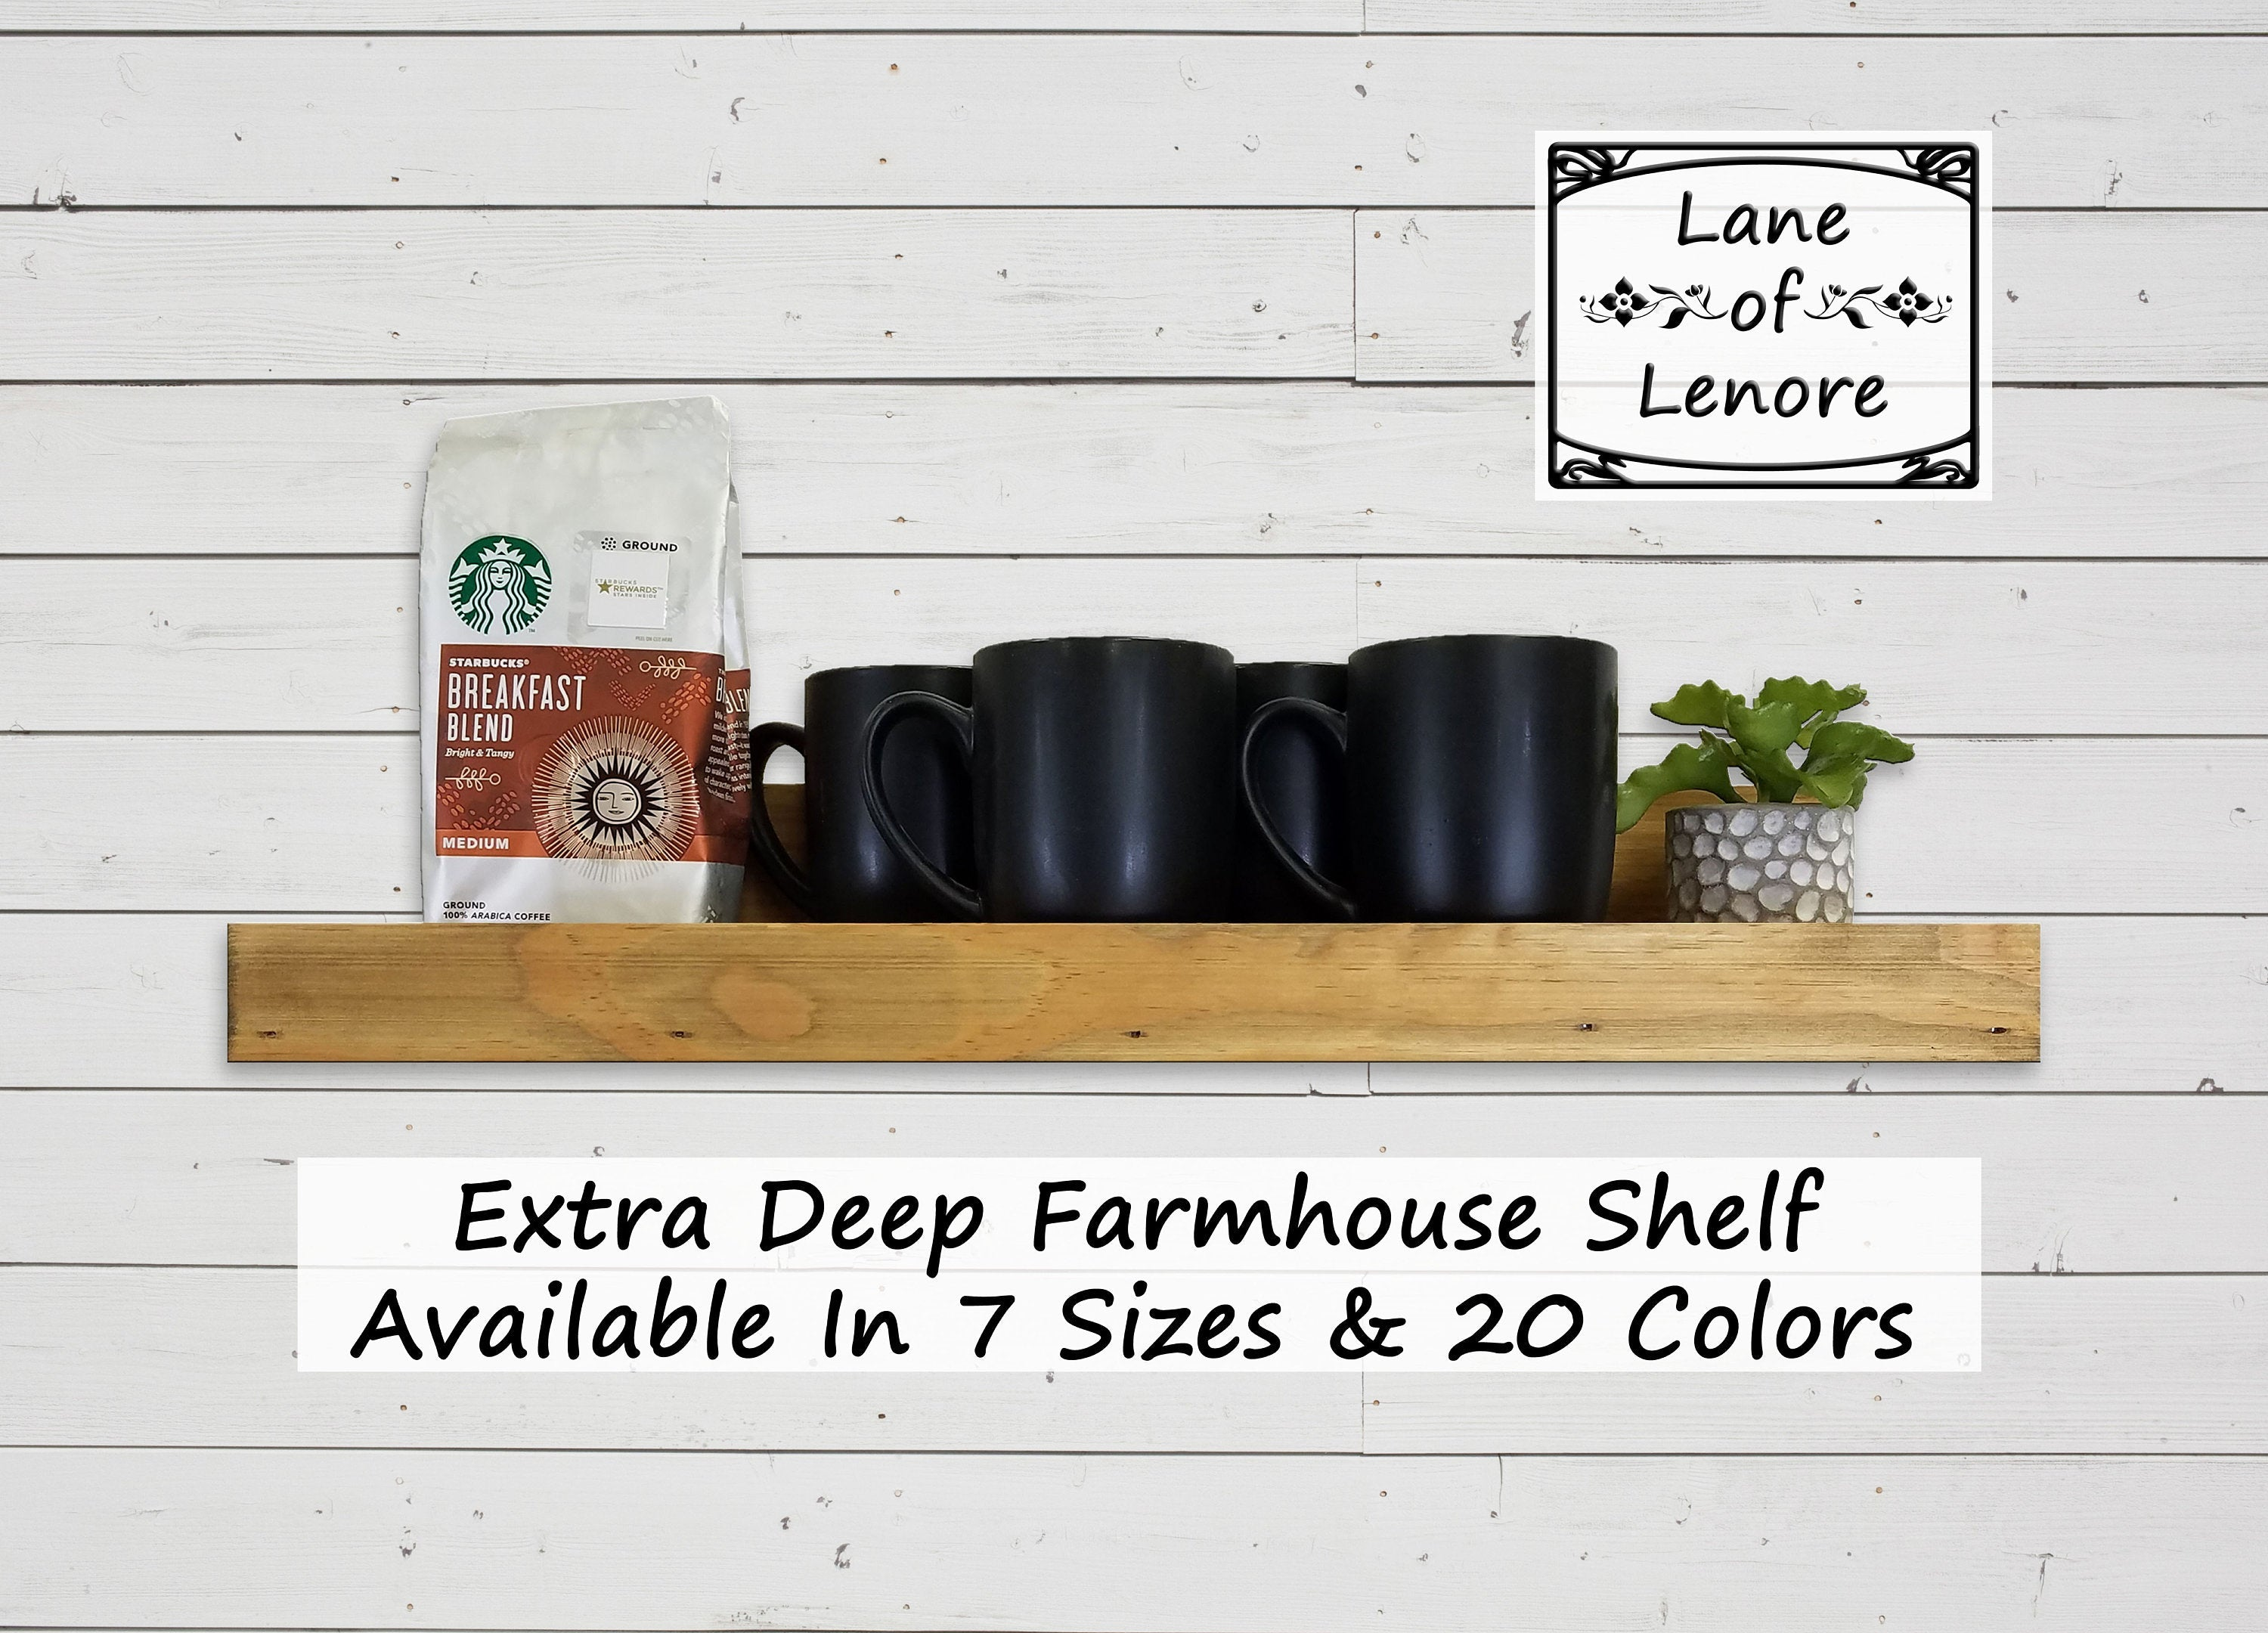 Extra Deep Farmhouse Shelf With Ledge - 20 Stain Colors - Renewed Decor & Storage